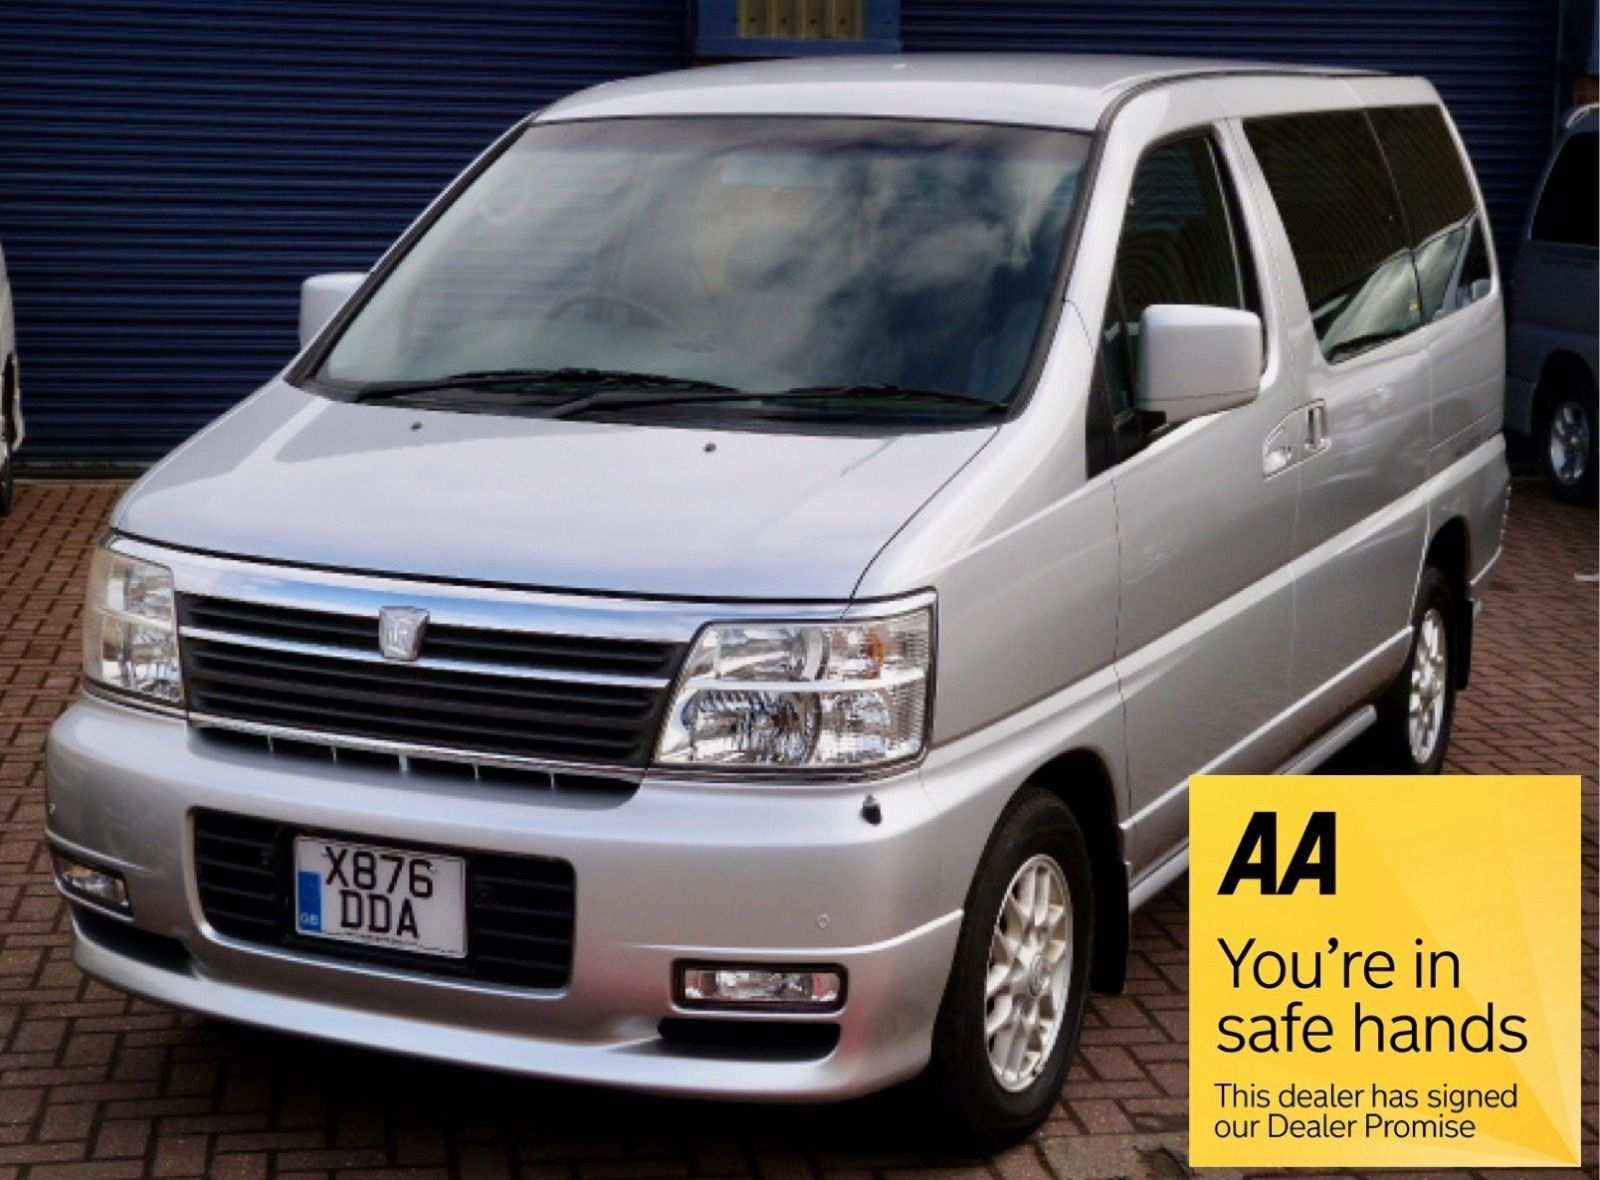 98 New Nissan Elgrand 2020 Price And Release Date